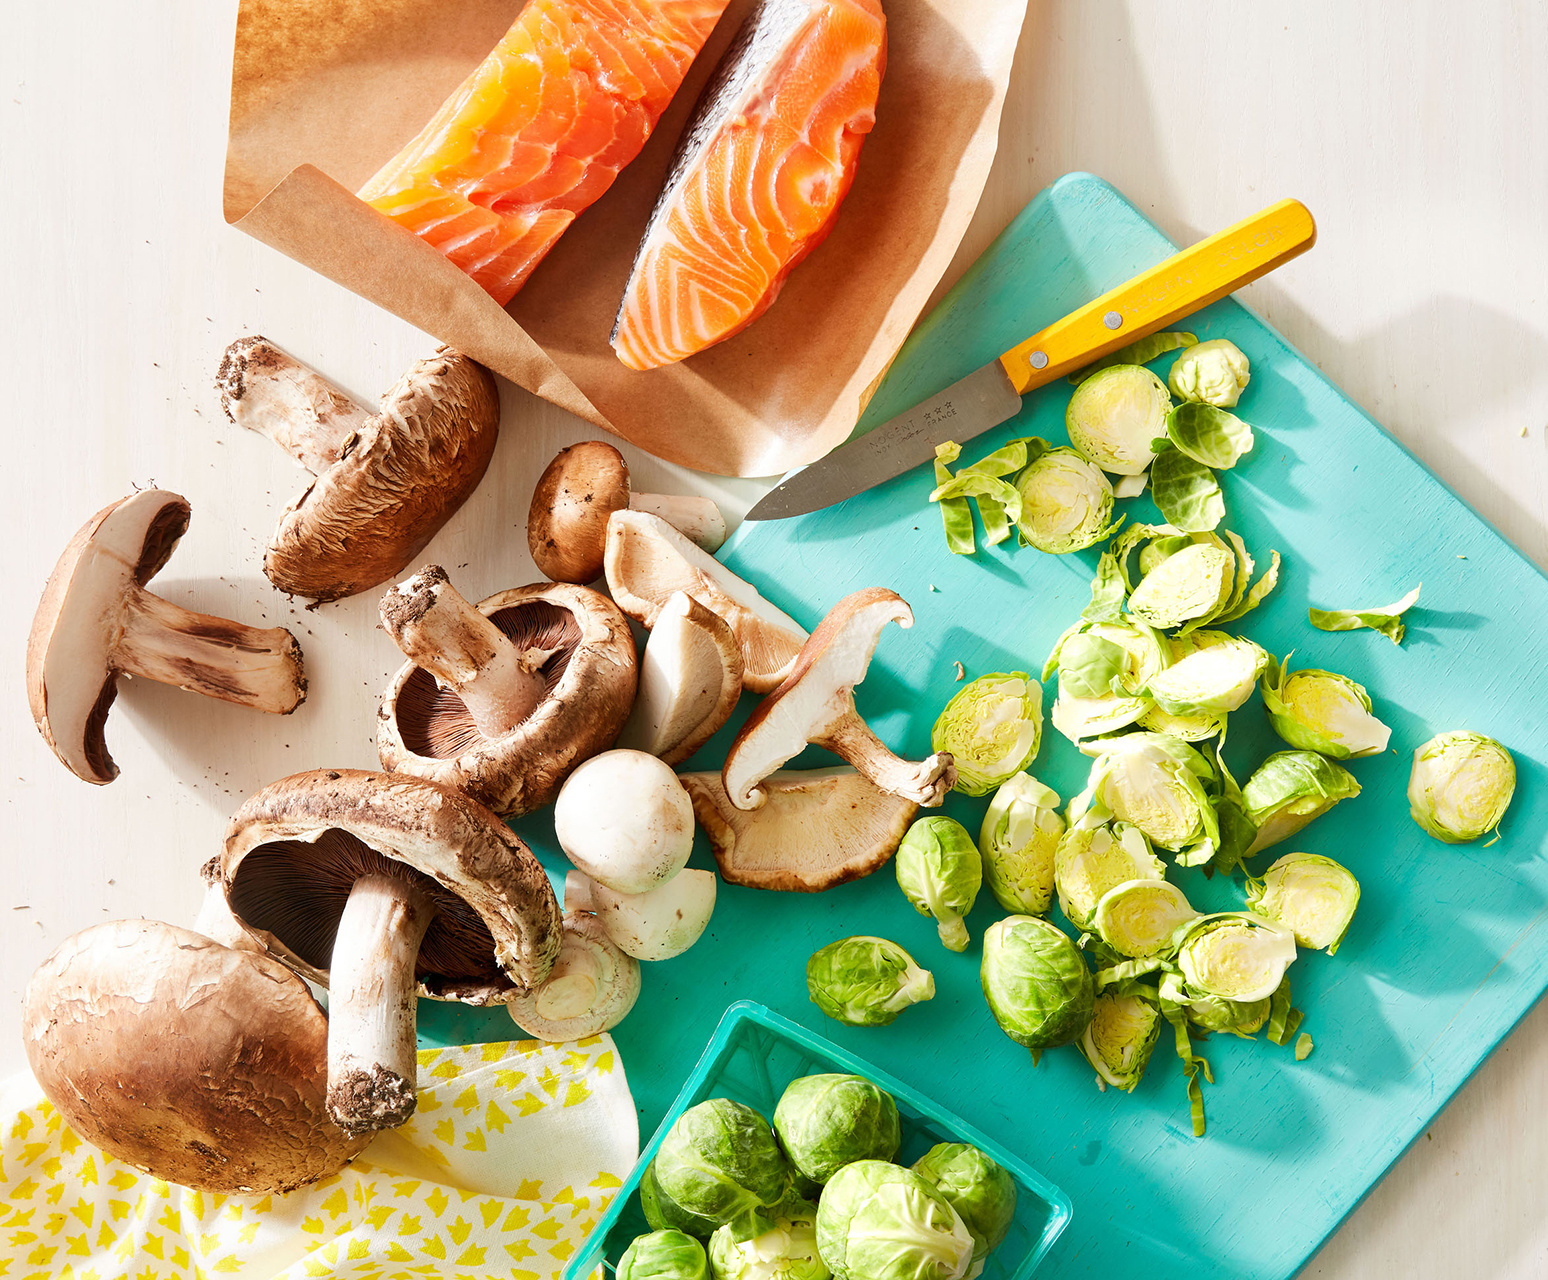 mushrooms brussels sprouts fish on teal cutting board